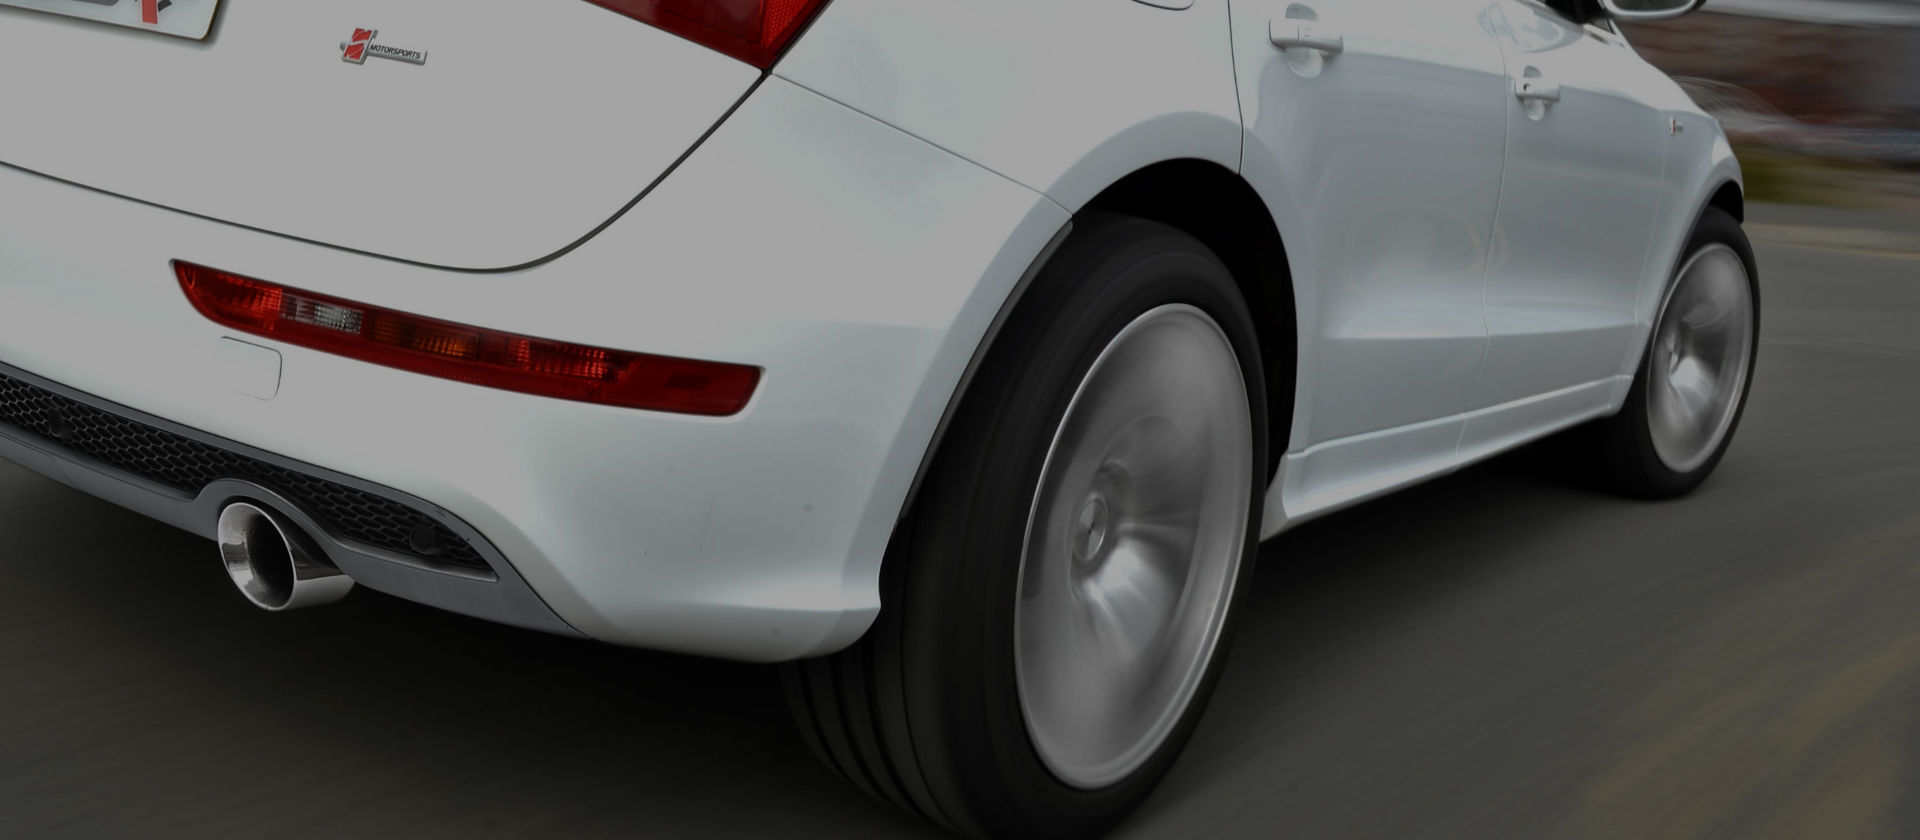 Does your car need a new exhaust system or a repair to its current one?